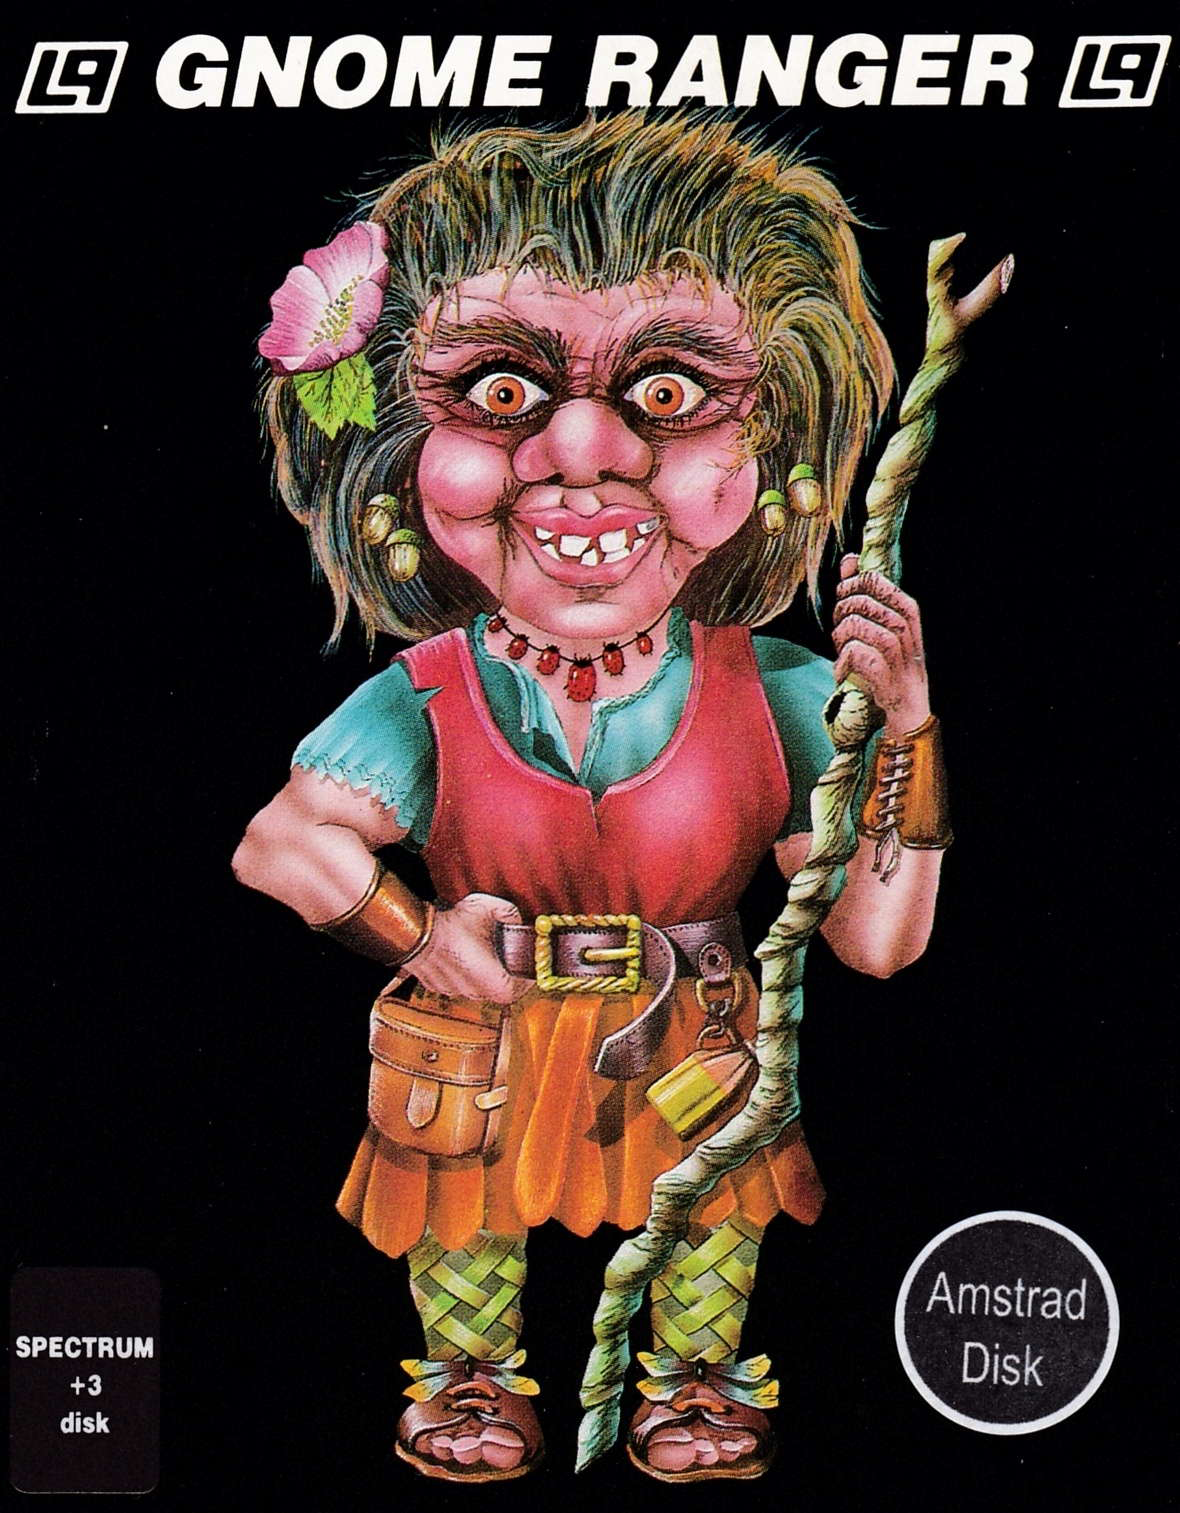 cover of the Amstrad CPC game Gnome Ranger  by GameBase CPC